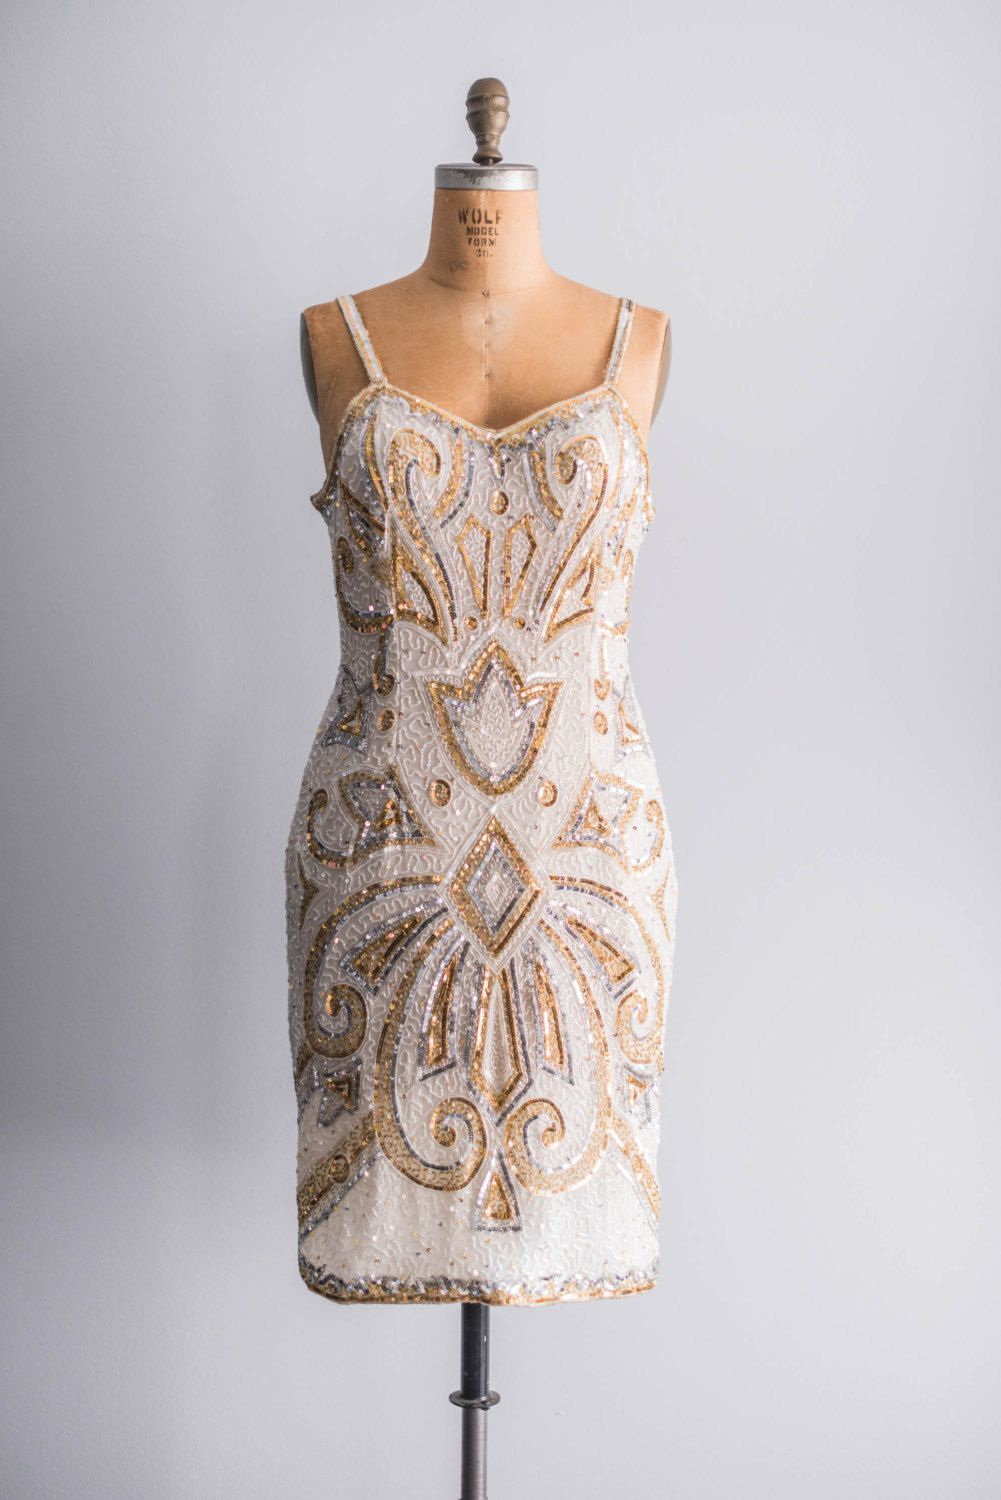 Beaded vintage dresses vintage gold beaded bridesmaid dressfull vintage gold beaded bridesmaid dress dresses party and fashion dresses ombrellifo Choice Image